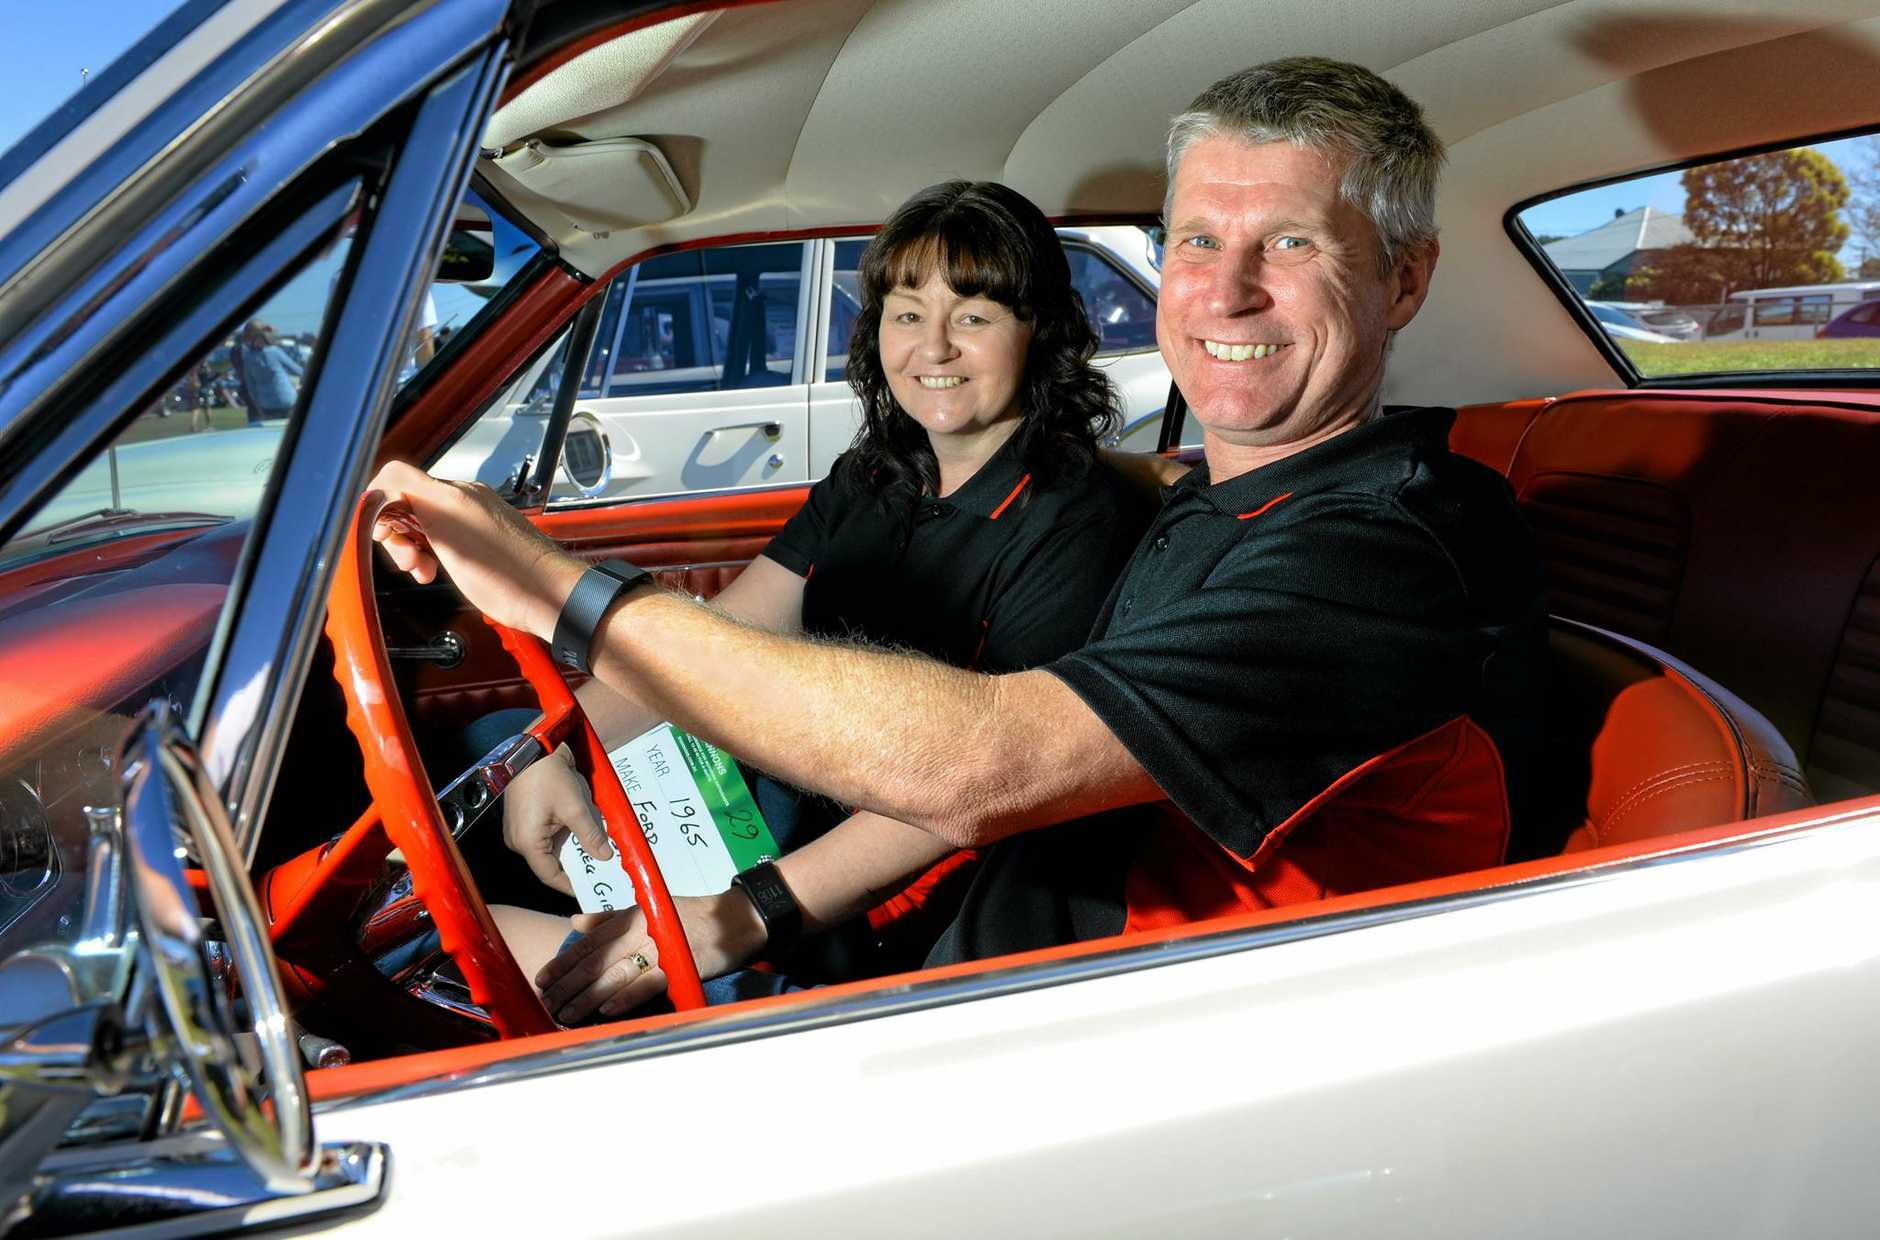 How to Get a Cash for cars Ipswich: